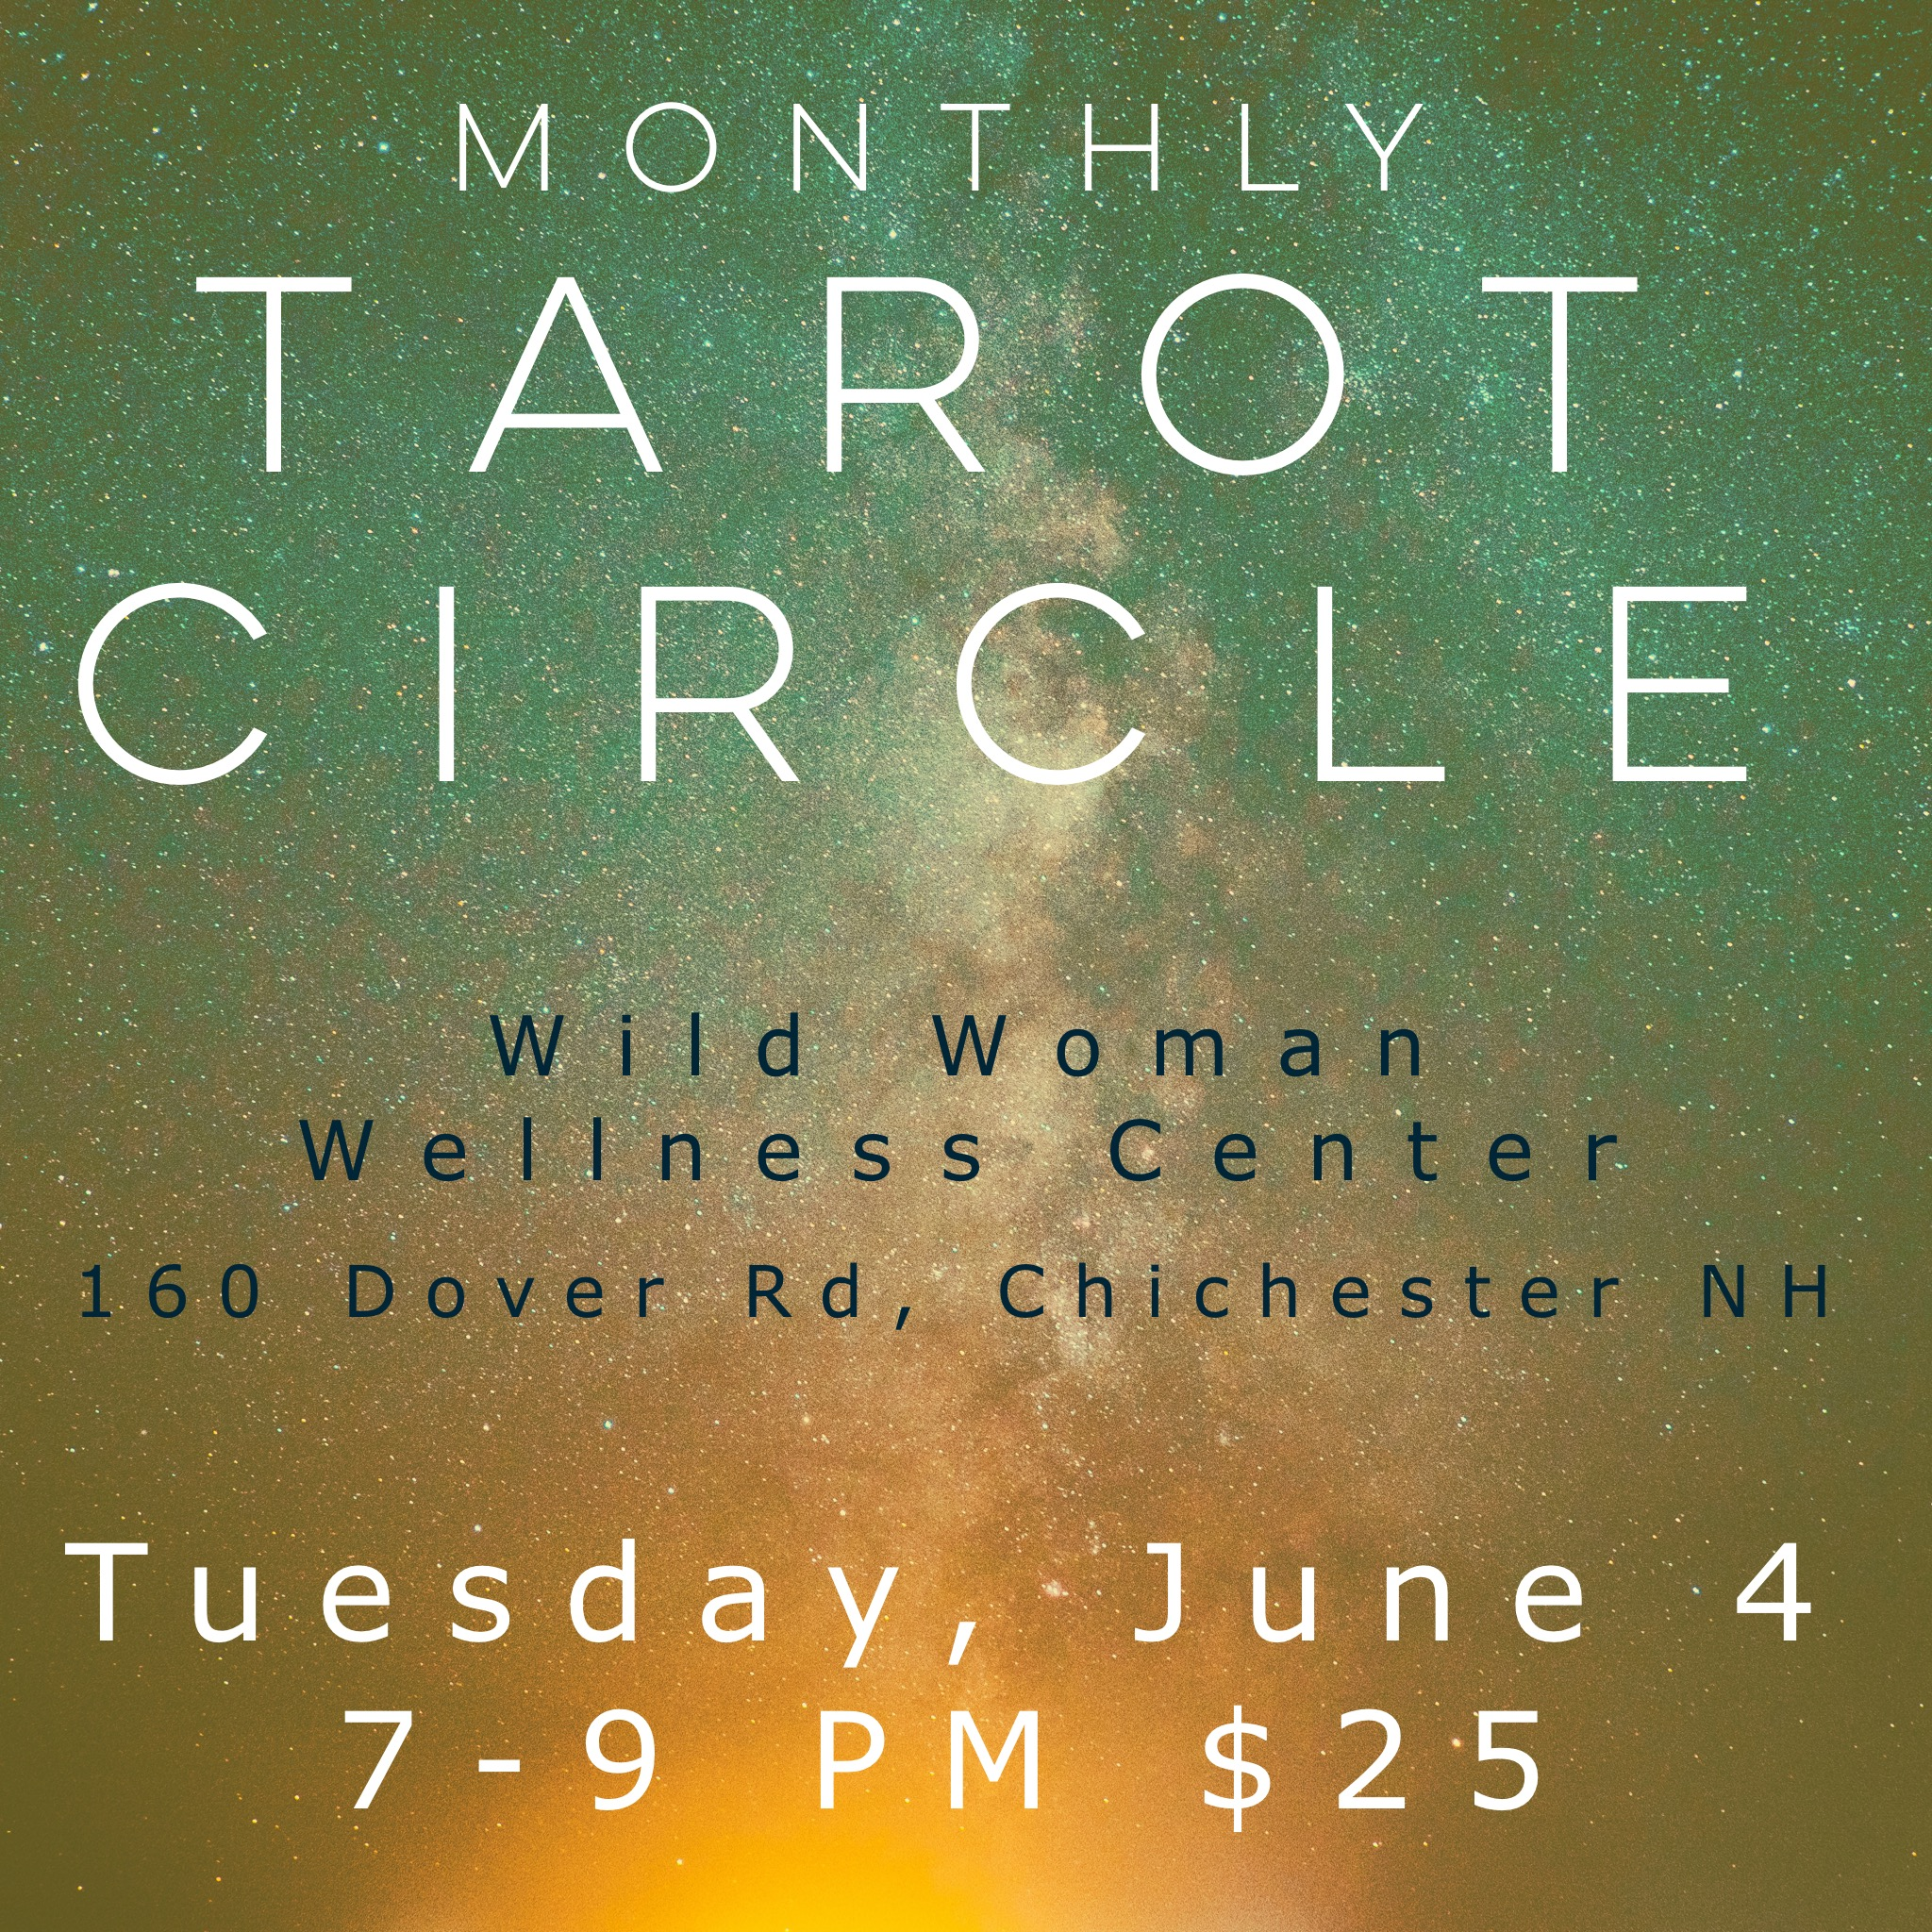 Our Monthly Tarot Circle is on June 4 at Wild Woman Wellness Center